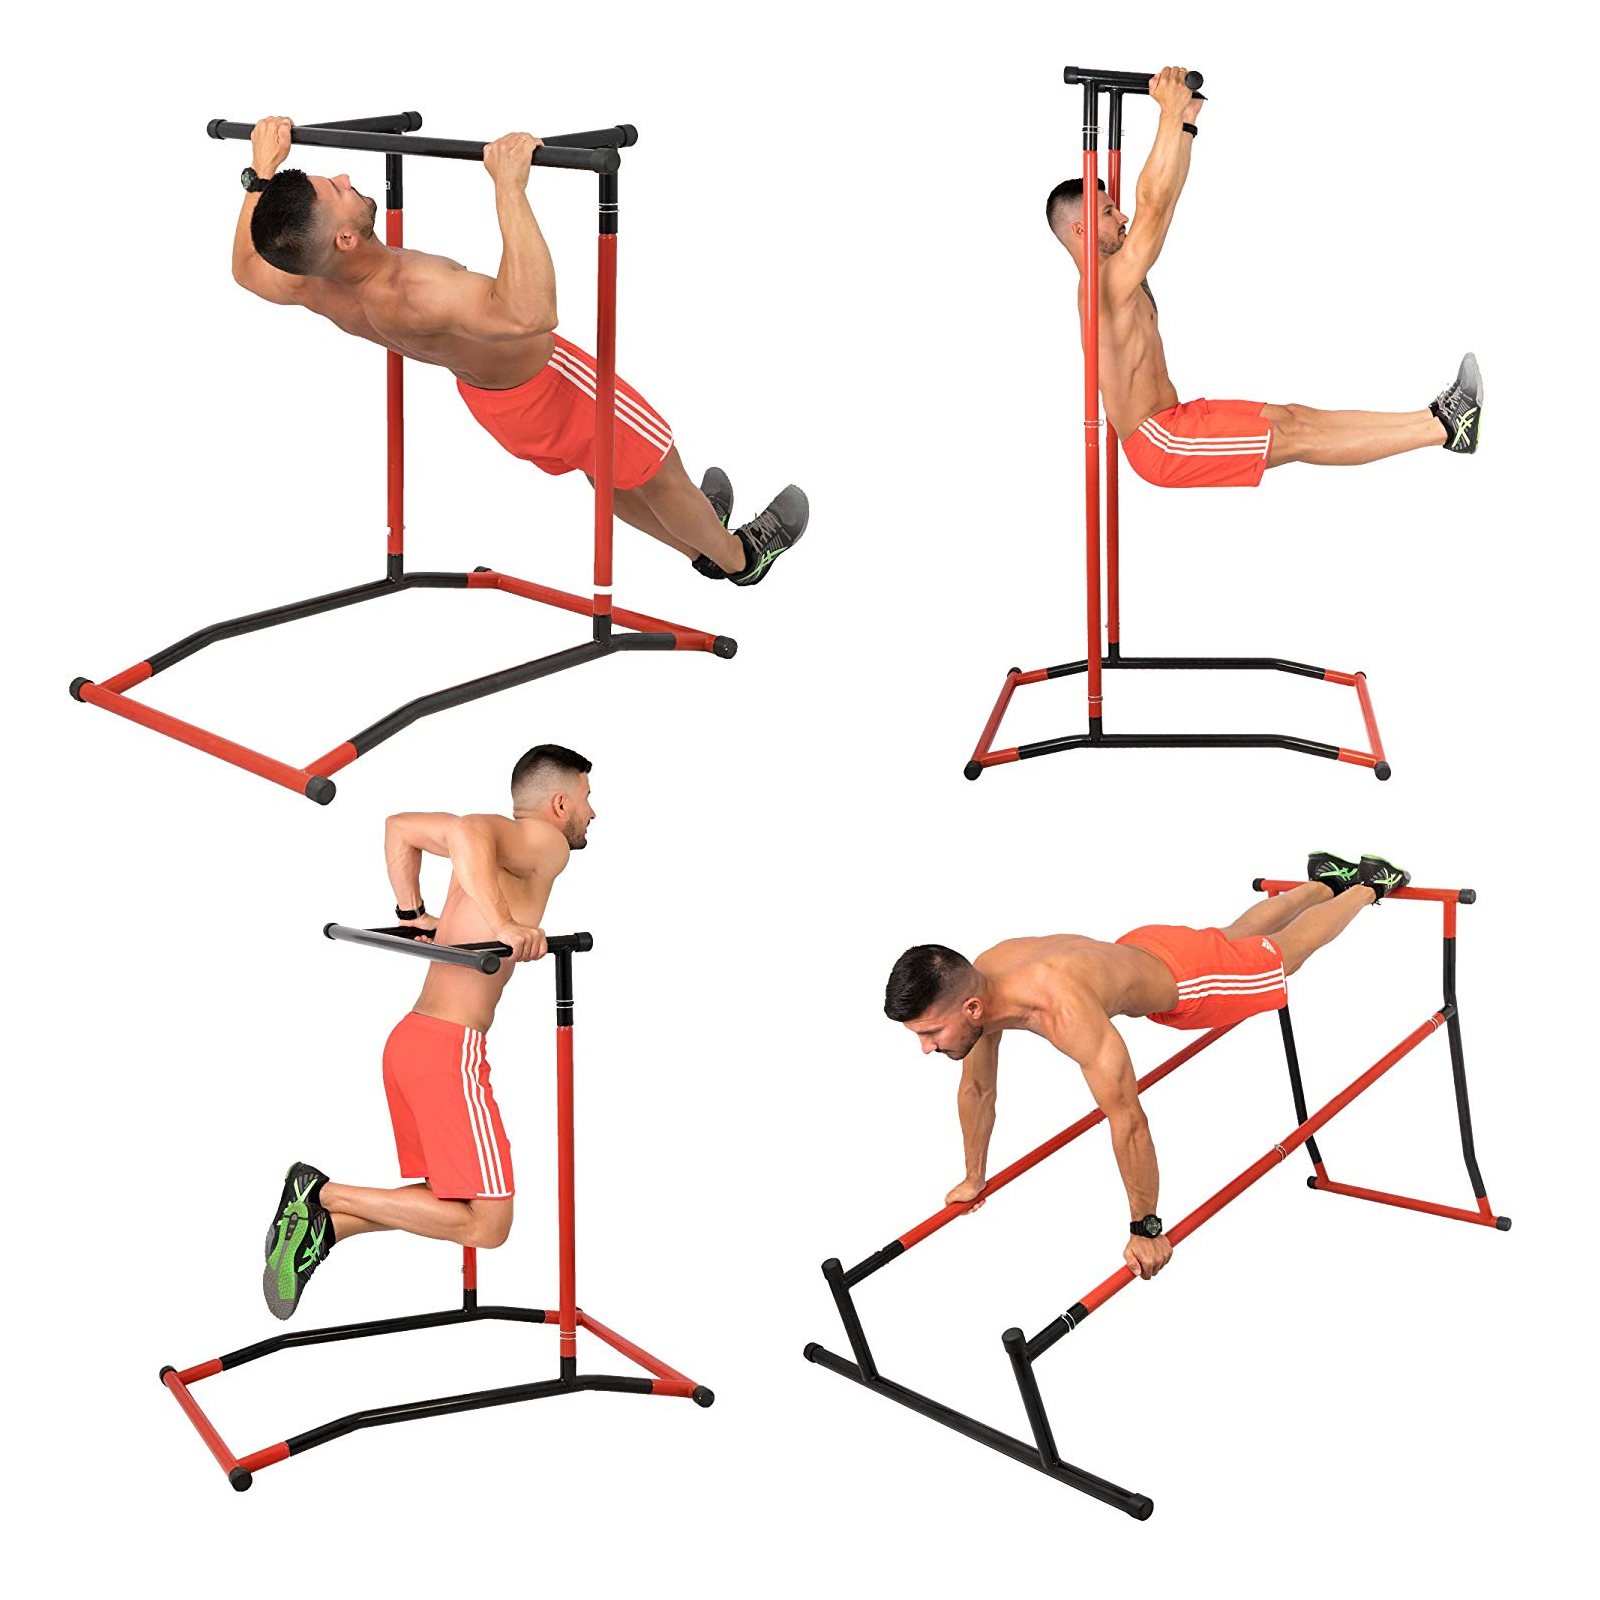 Portable-Power-Tower-for-Home-Gym-Workout-With-Dip-Station-And-Chin-Pull-Up-Bar thumbnail 24